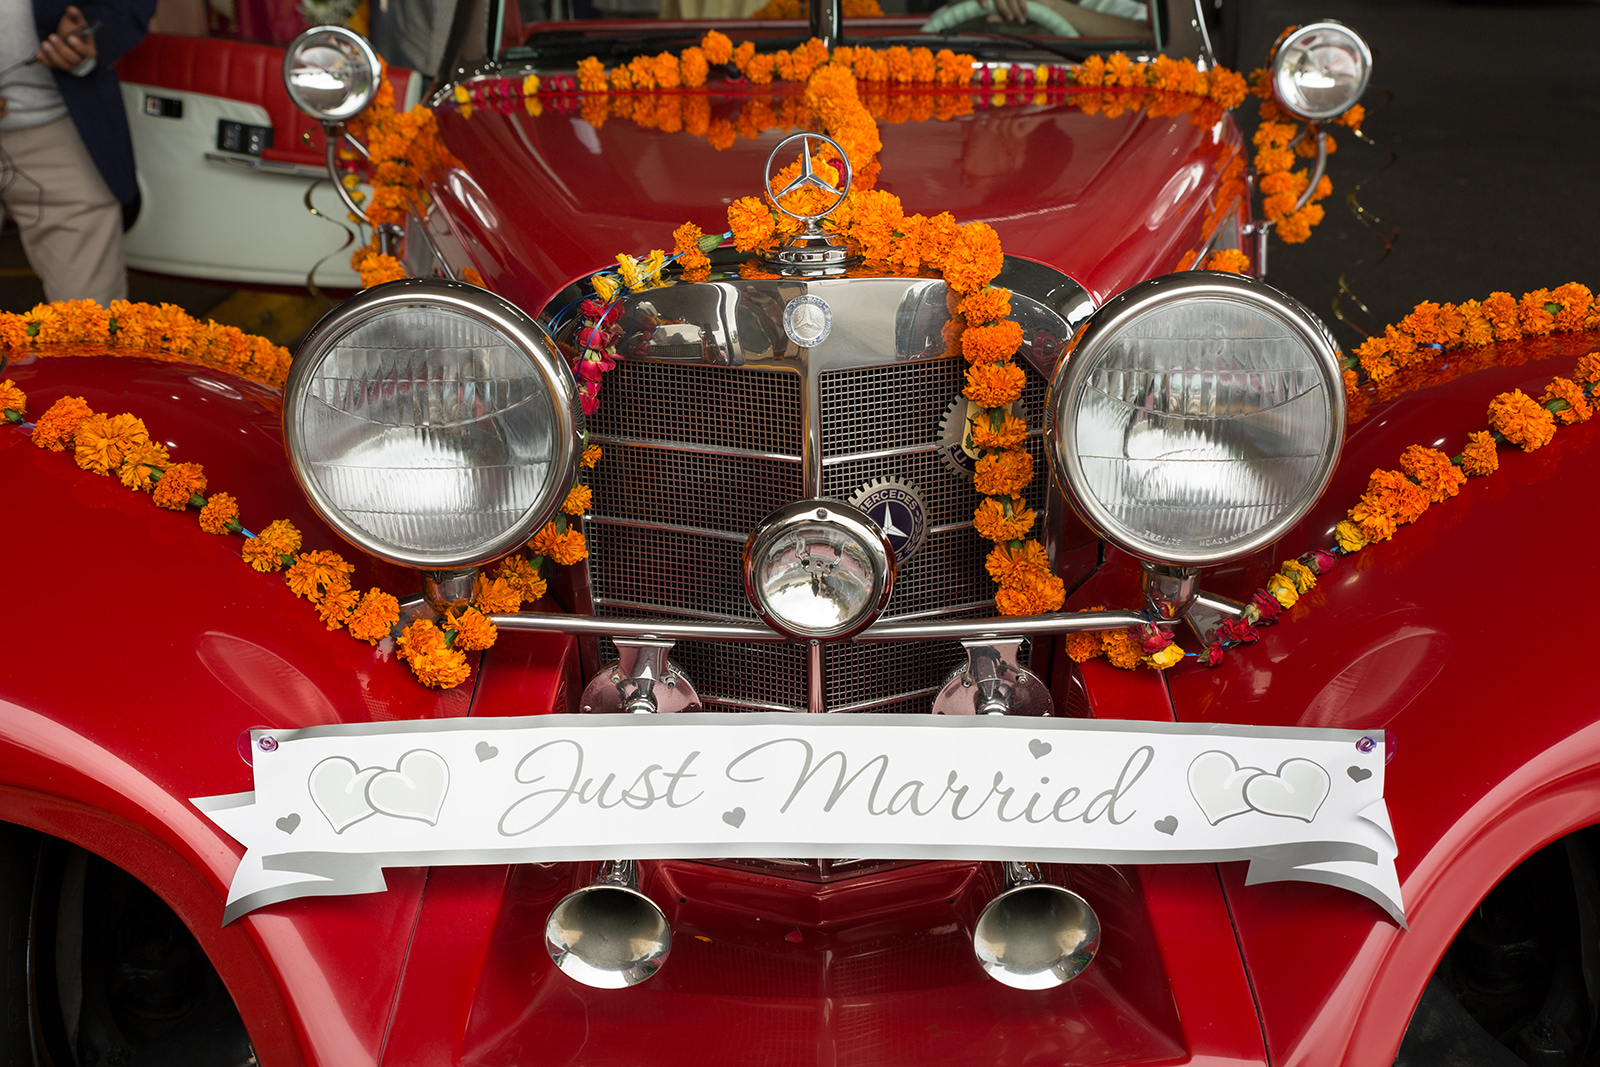 VIDAI - An sweet and emotional goodbye to the Bride and Groom